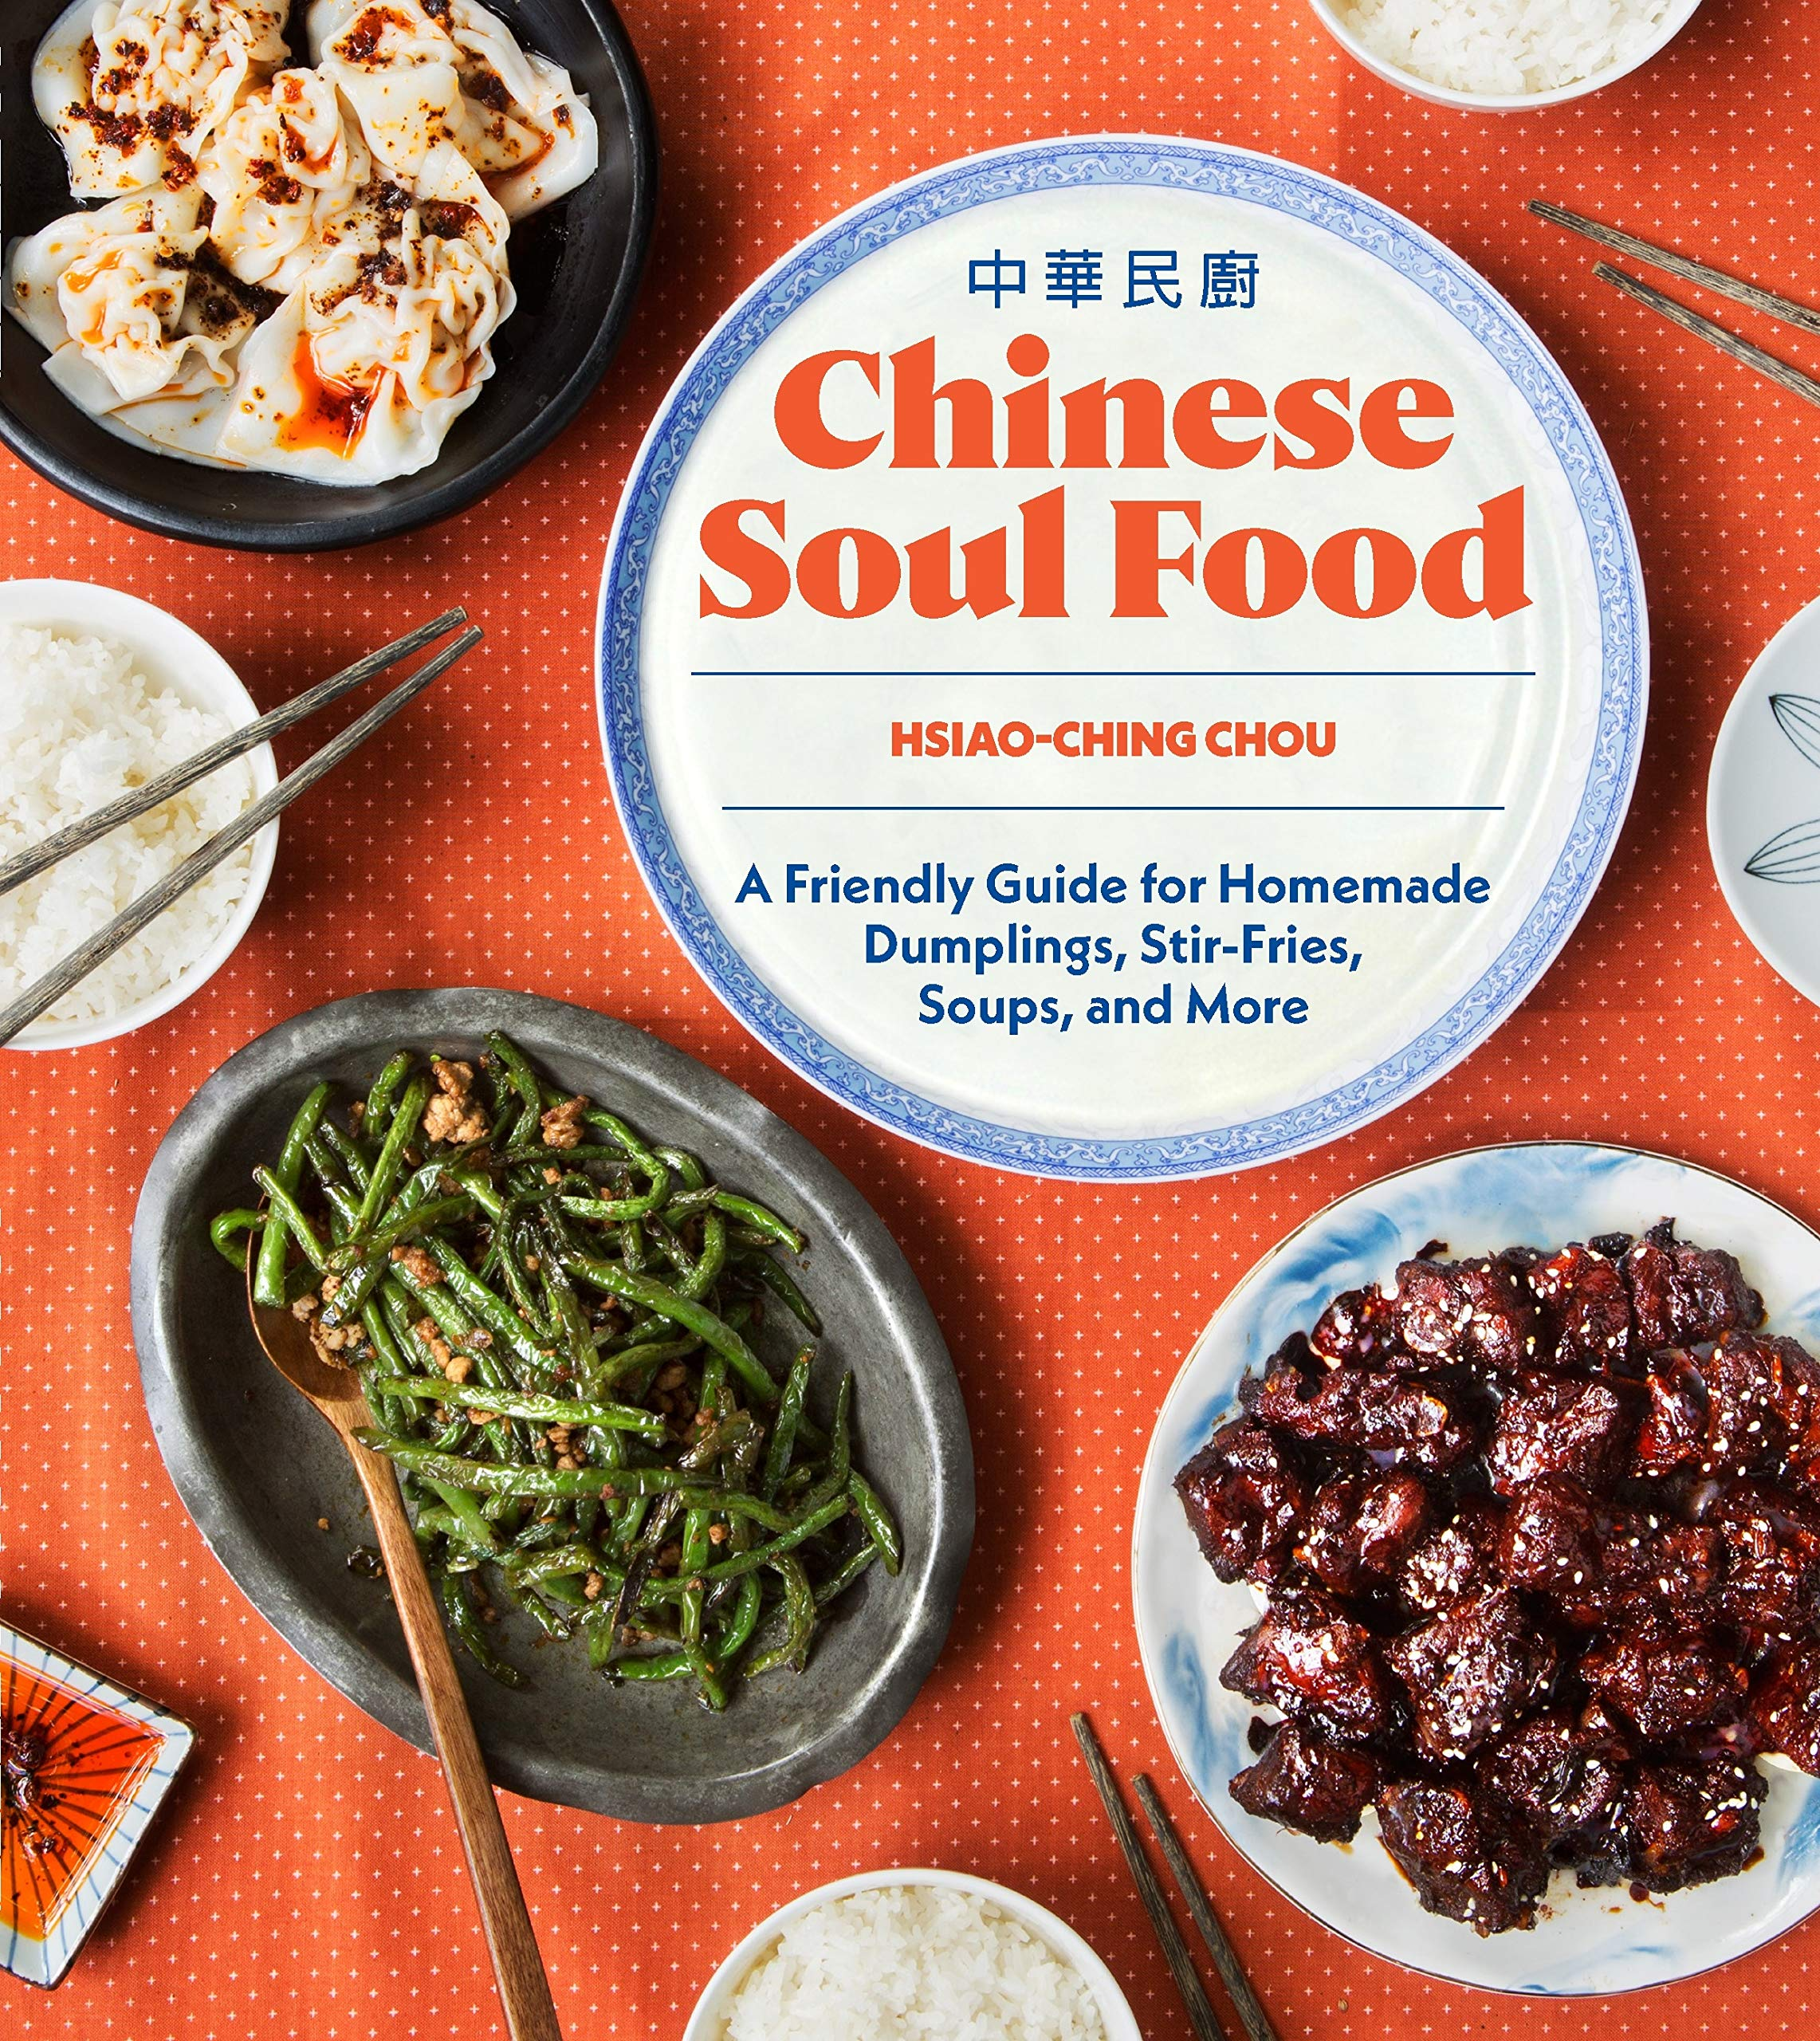 Chinese soul food a friendly guide for homemade dumplings stir chinese soul food a friendly guide for homemade dumplings stir fries soups and more hsiao ching chou 9781632171238 amazon books forumfinder Choice Image